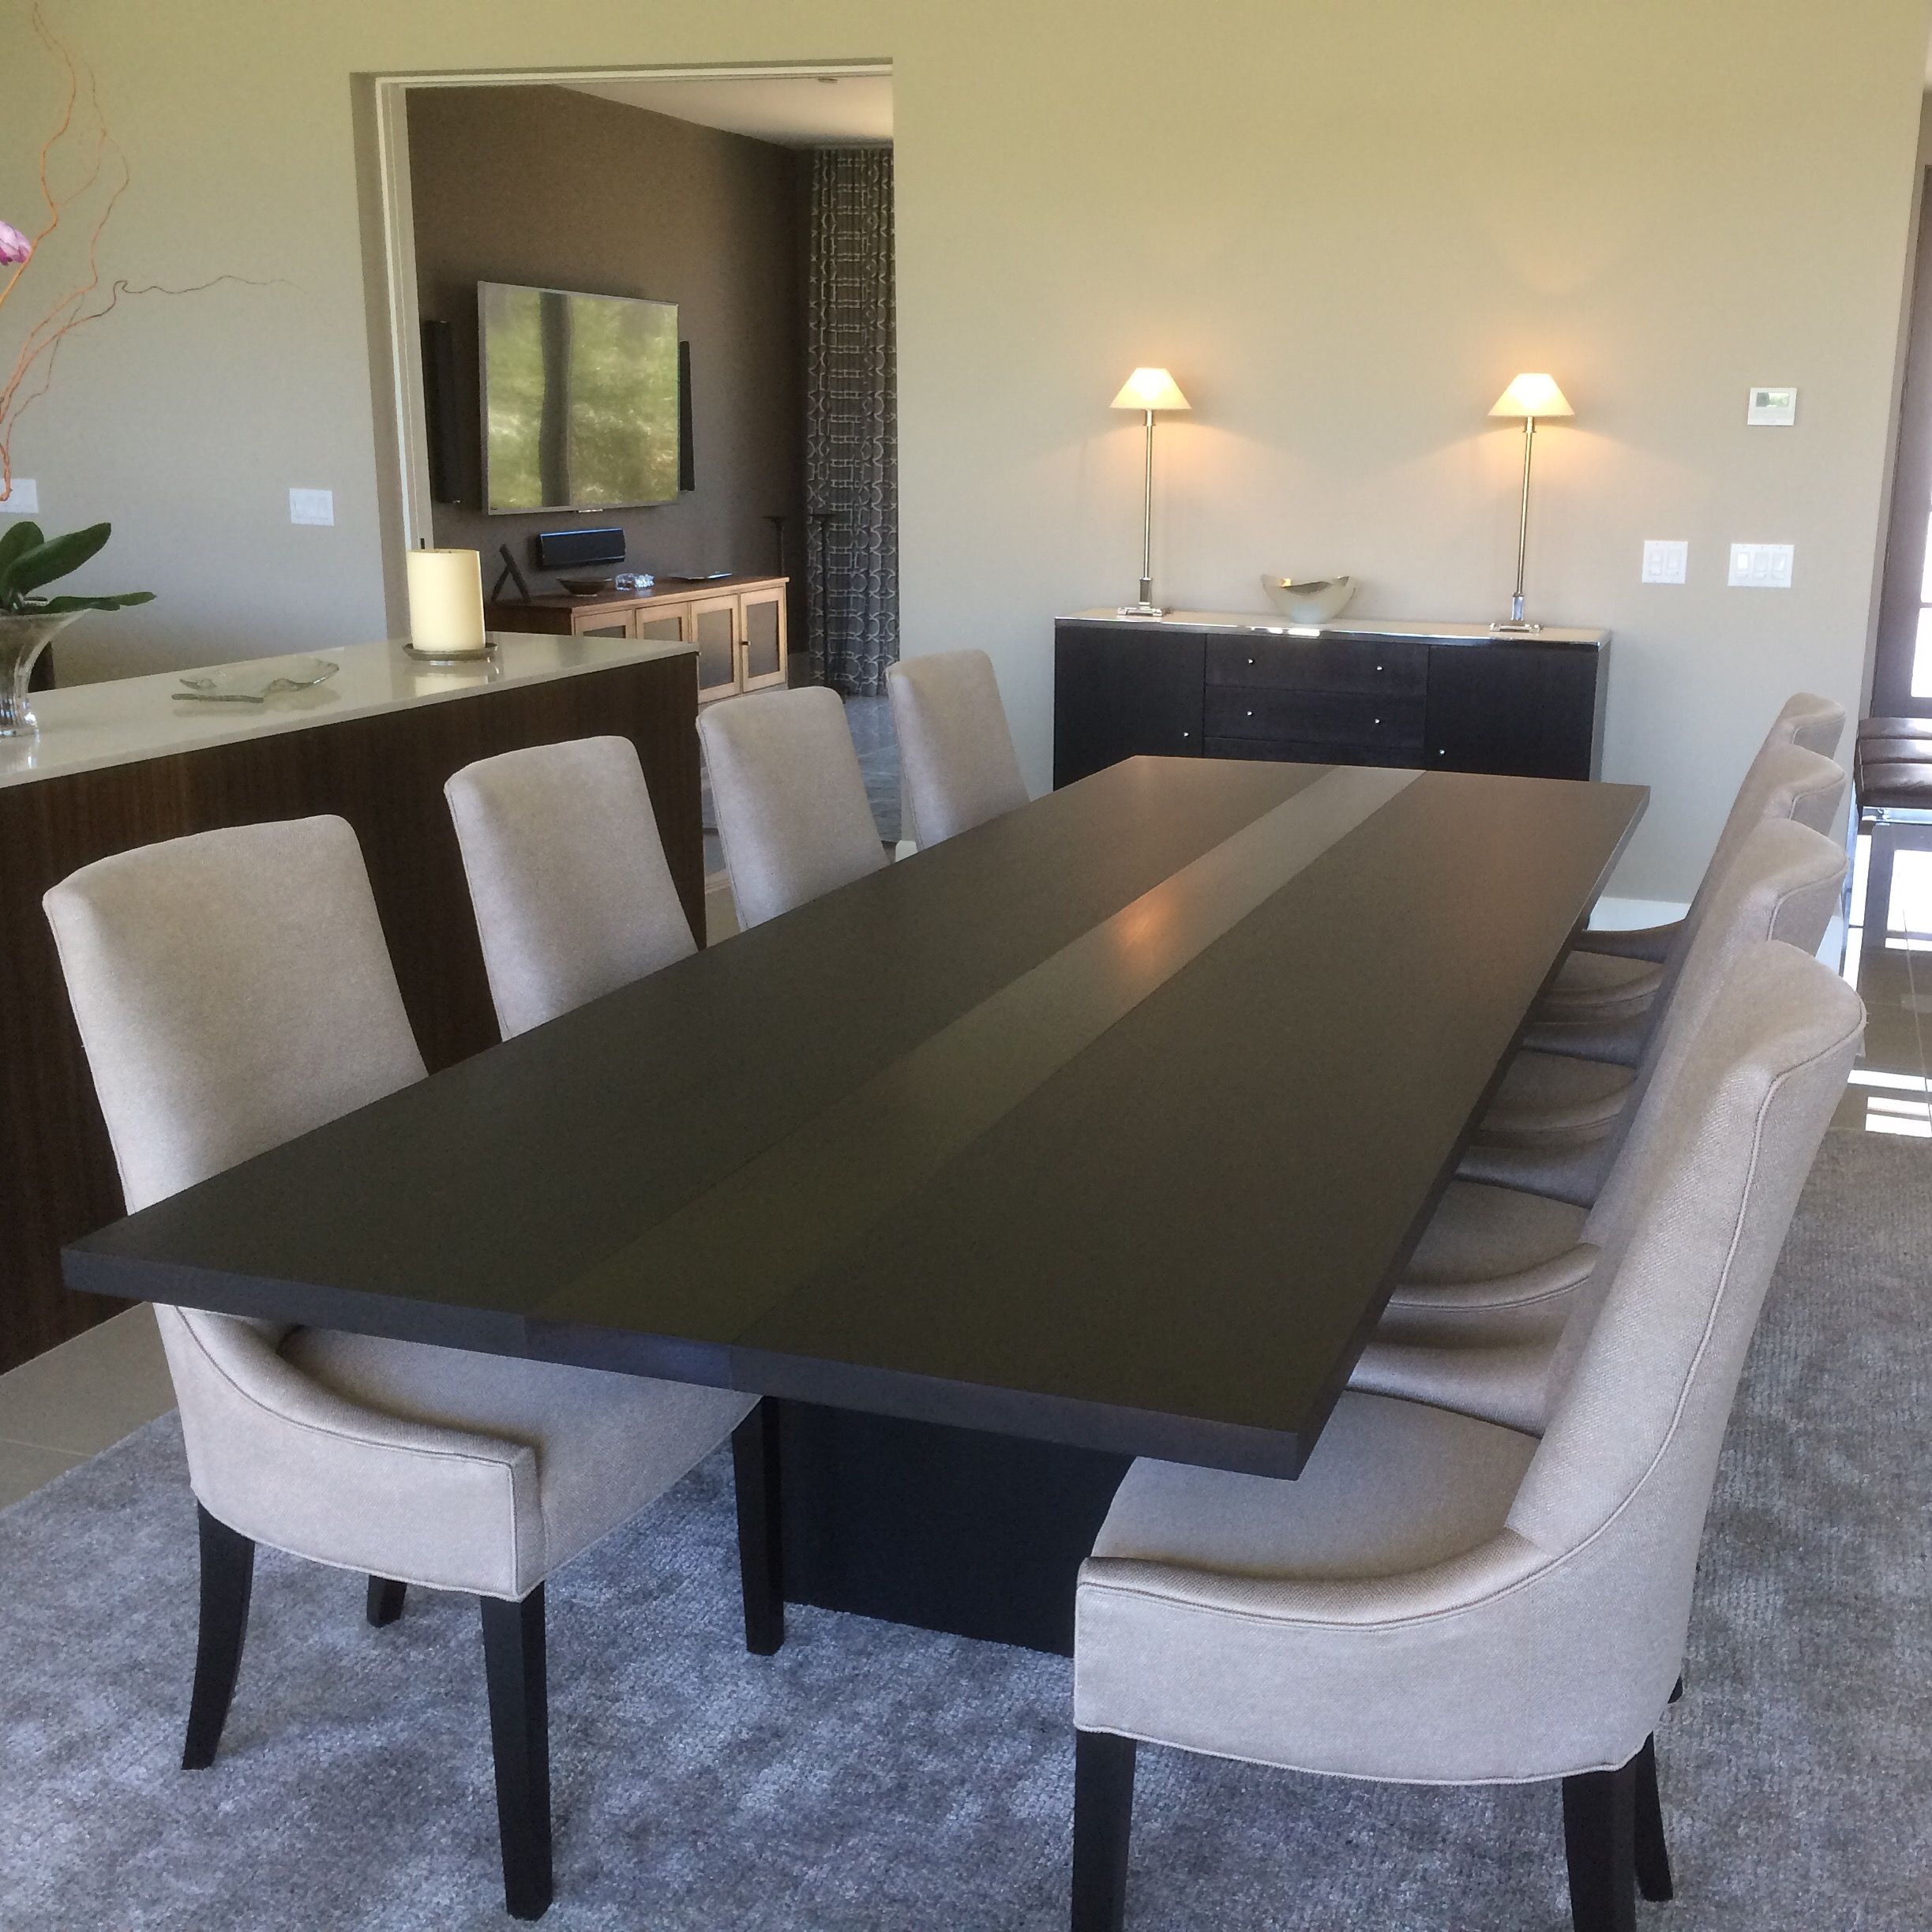 Handmade modern dining table by bedre woodworking - Modern dining table ideas ...